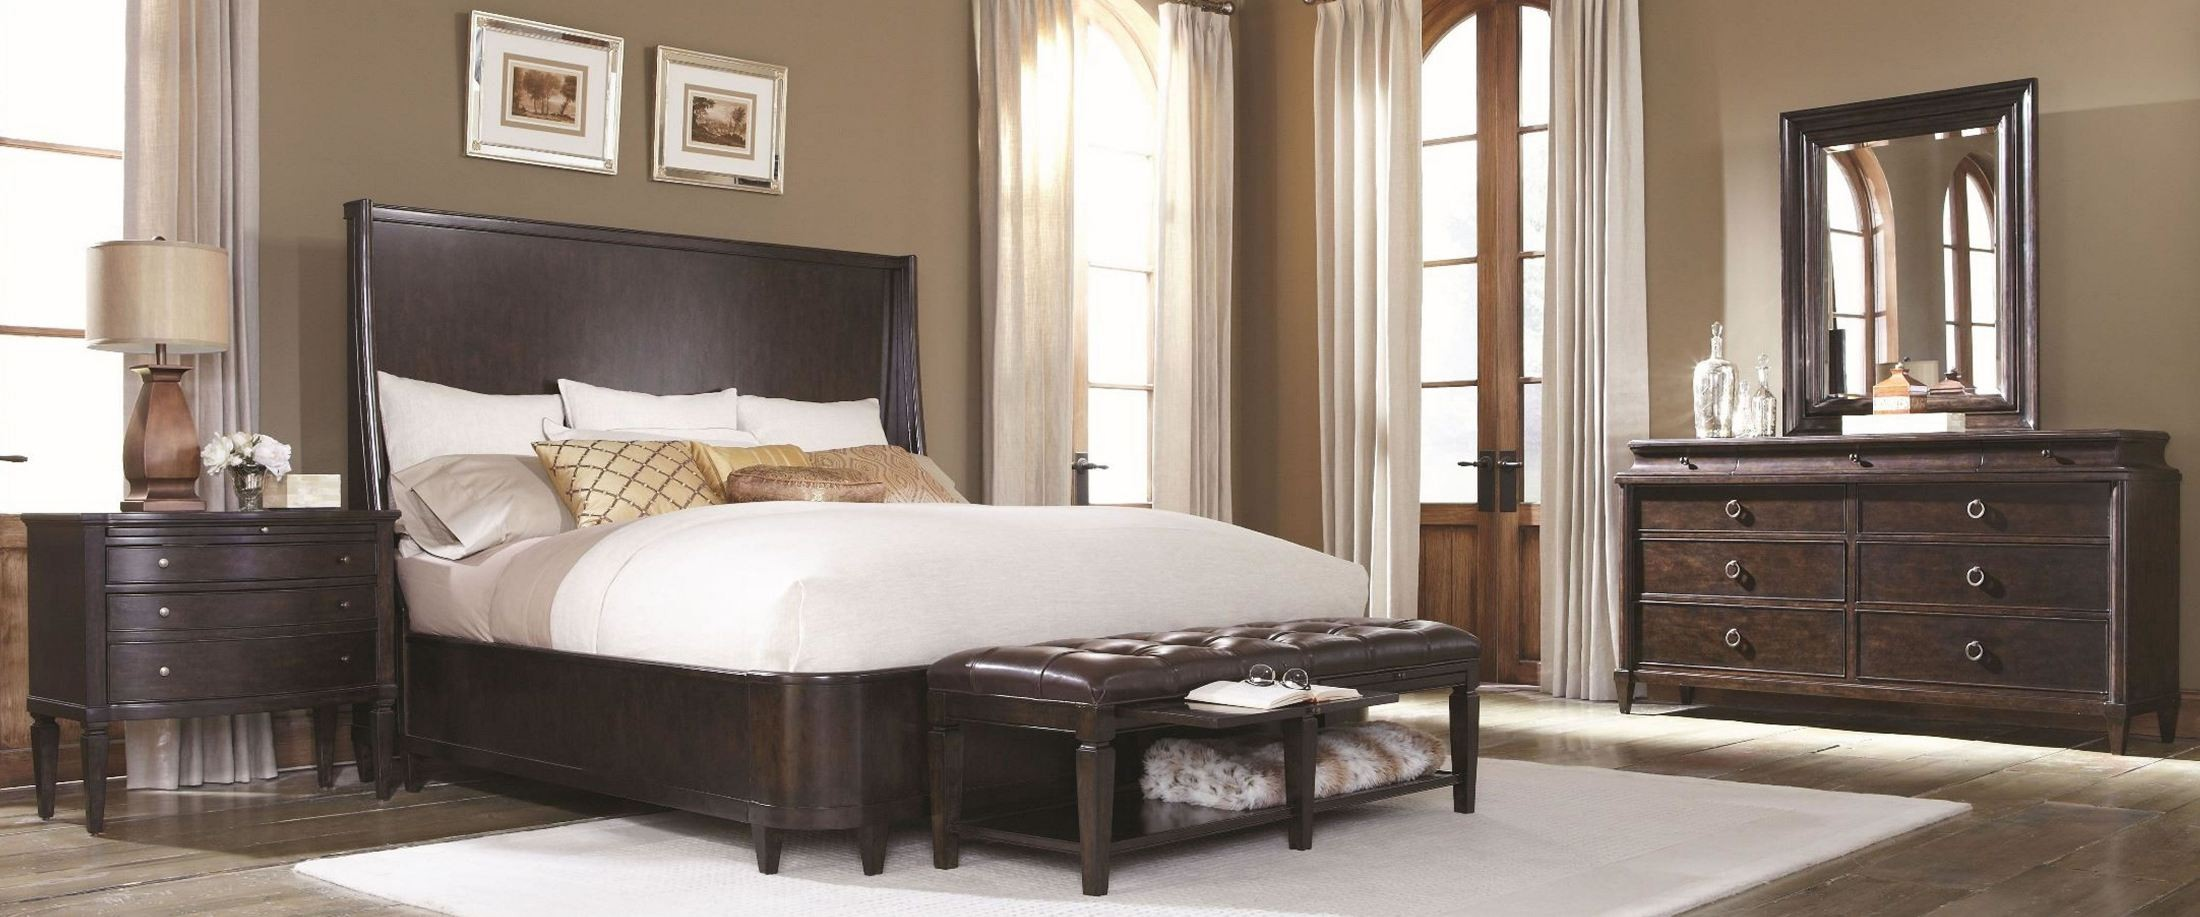 Classic Shelter Bedroom Set From ART (202165-1715